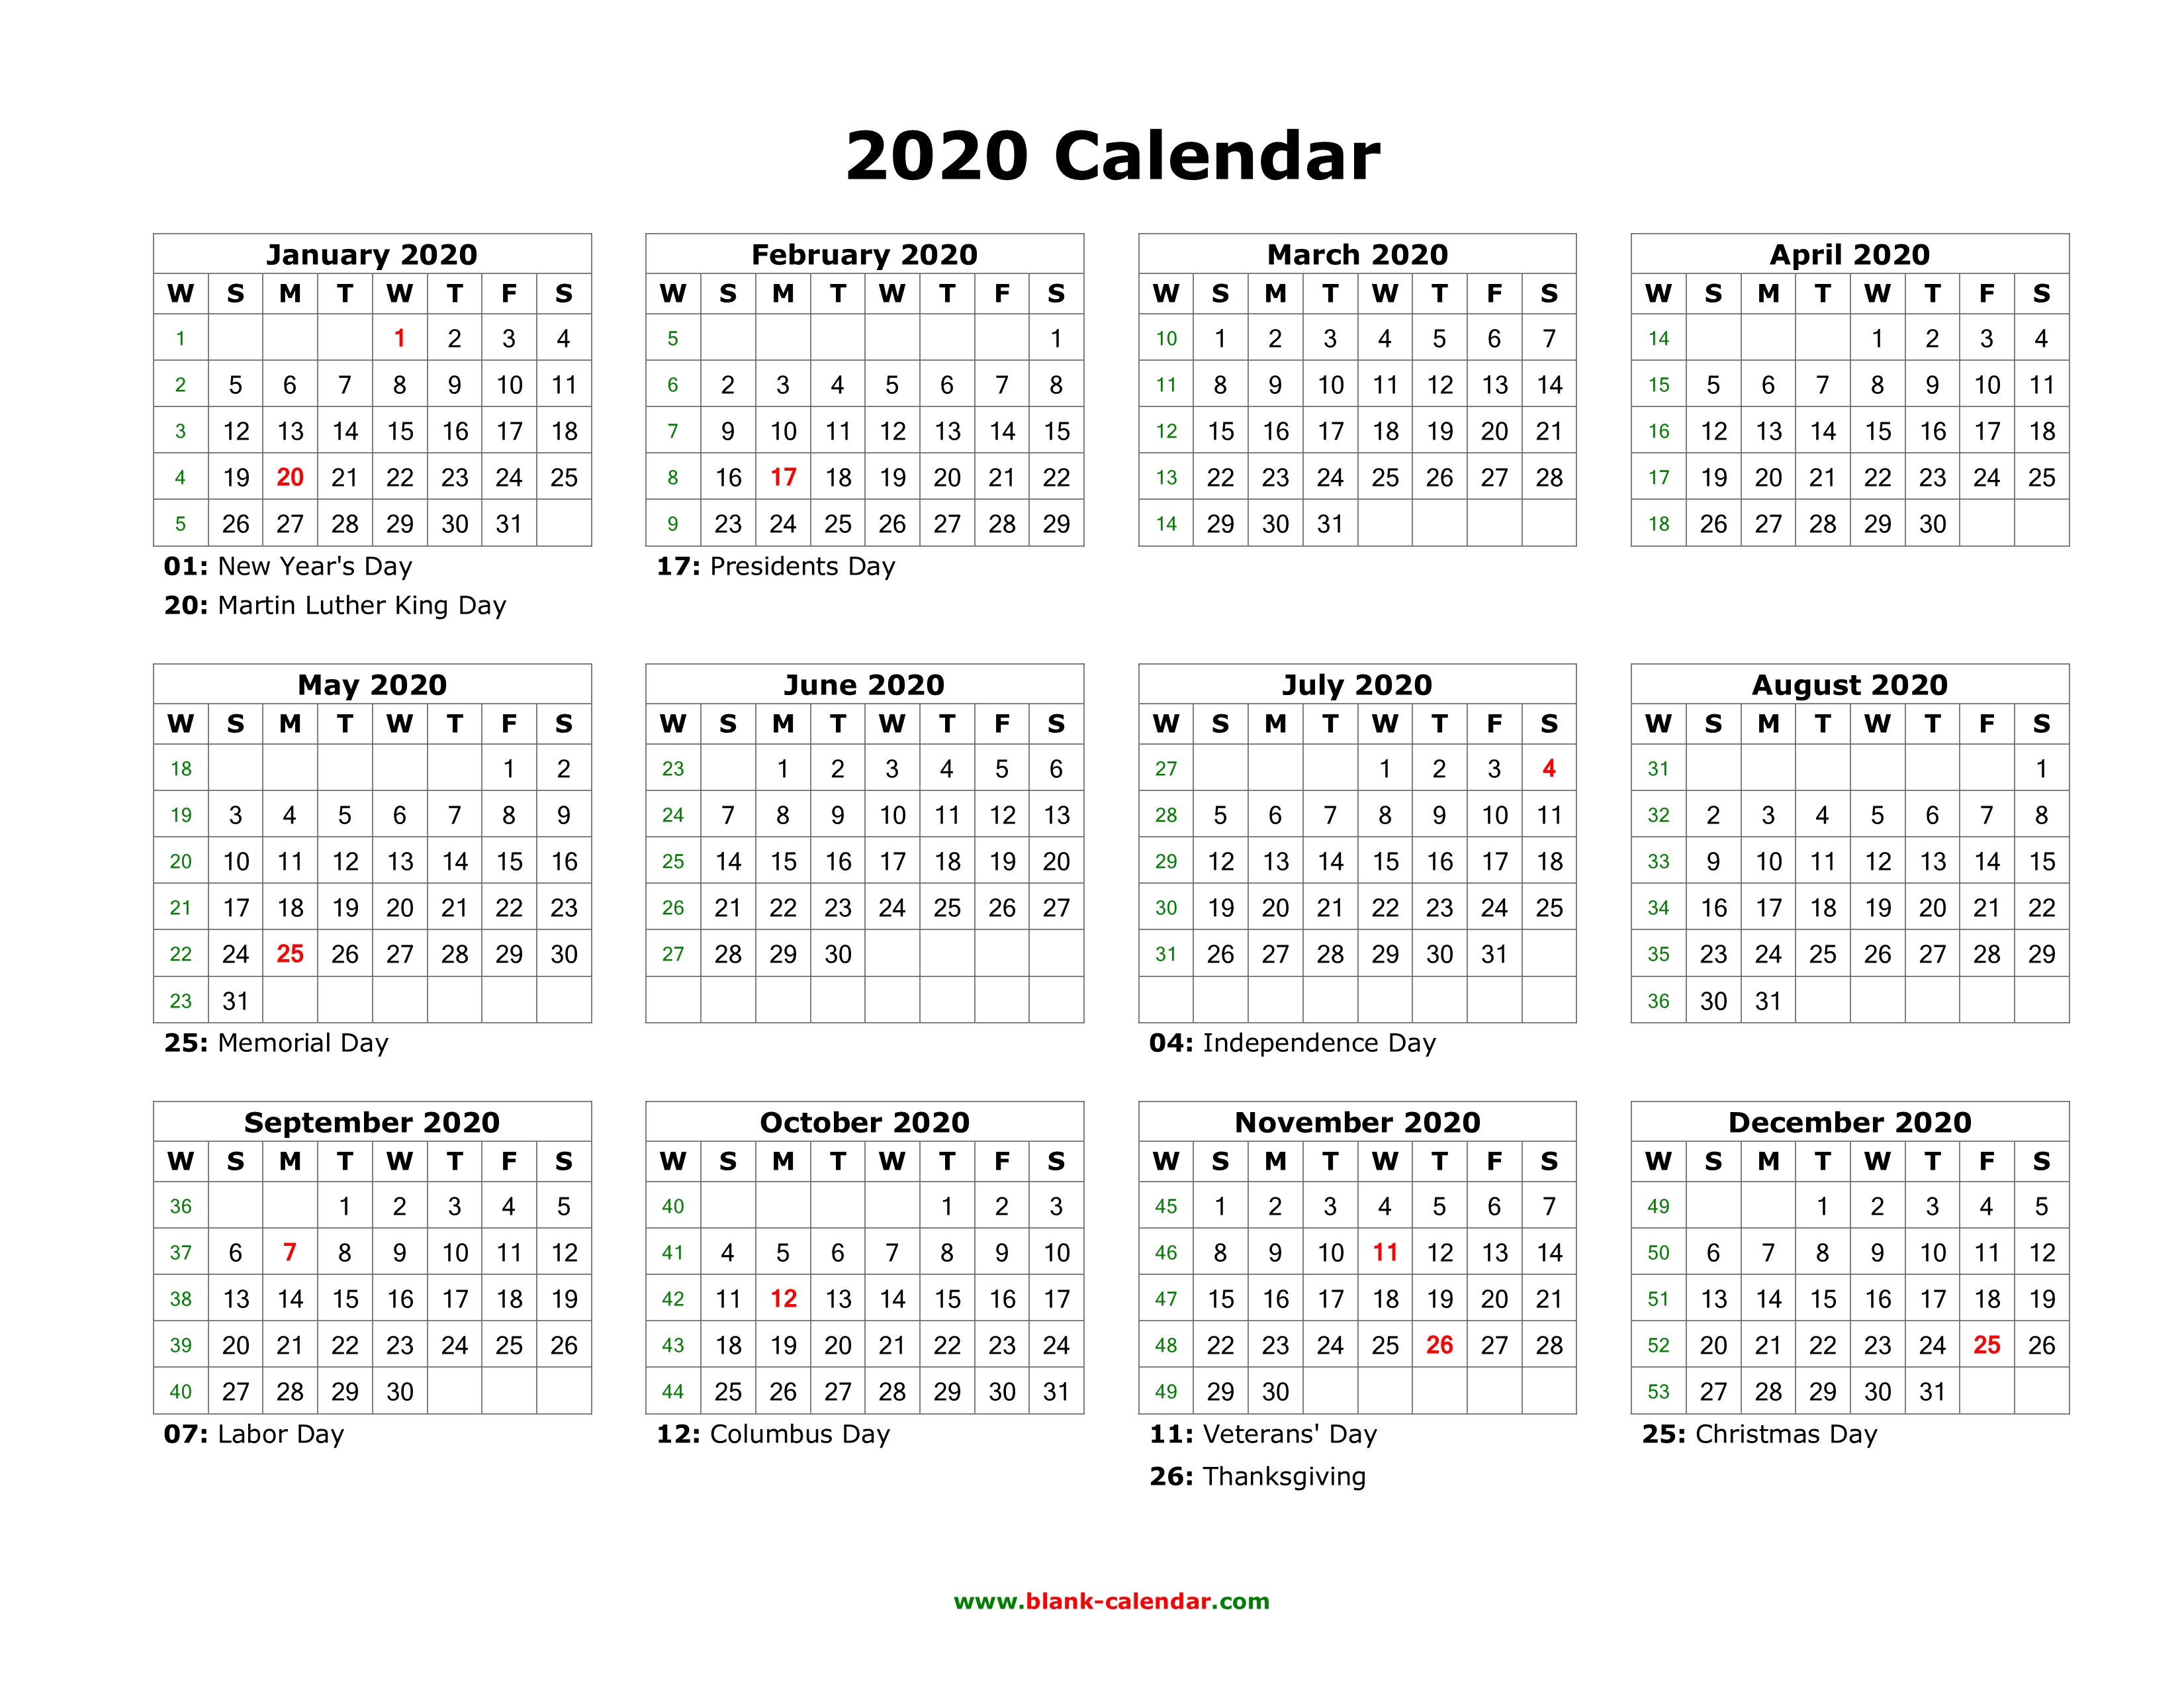 Blank Calendar 2020 | Free Download Calendar Templates intended for Year Calendar 2020 With Space To Write